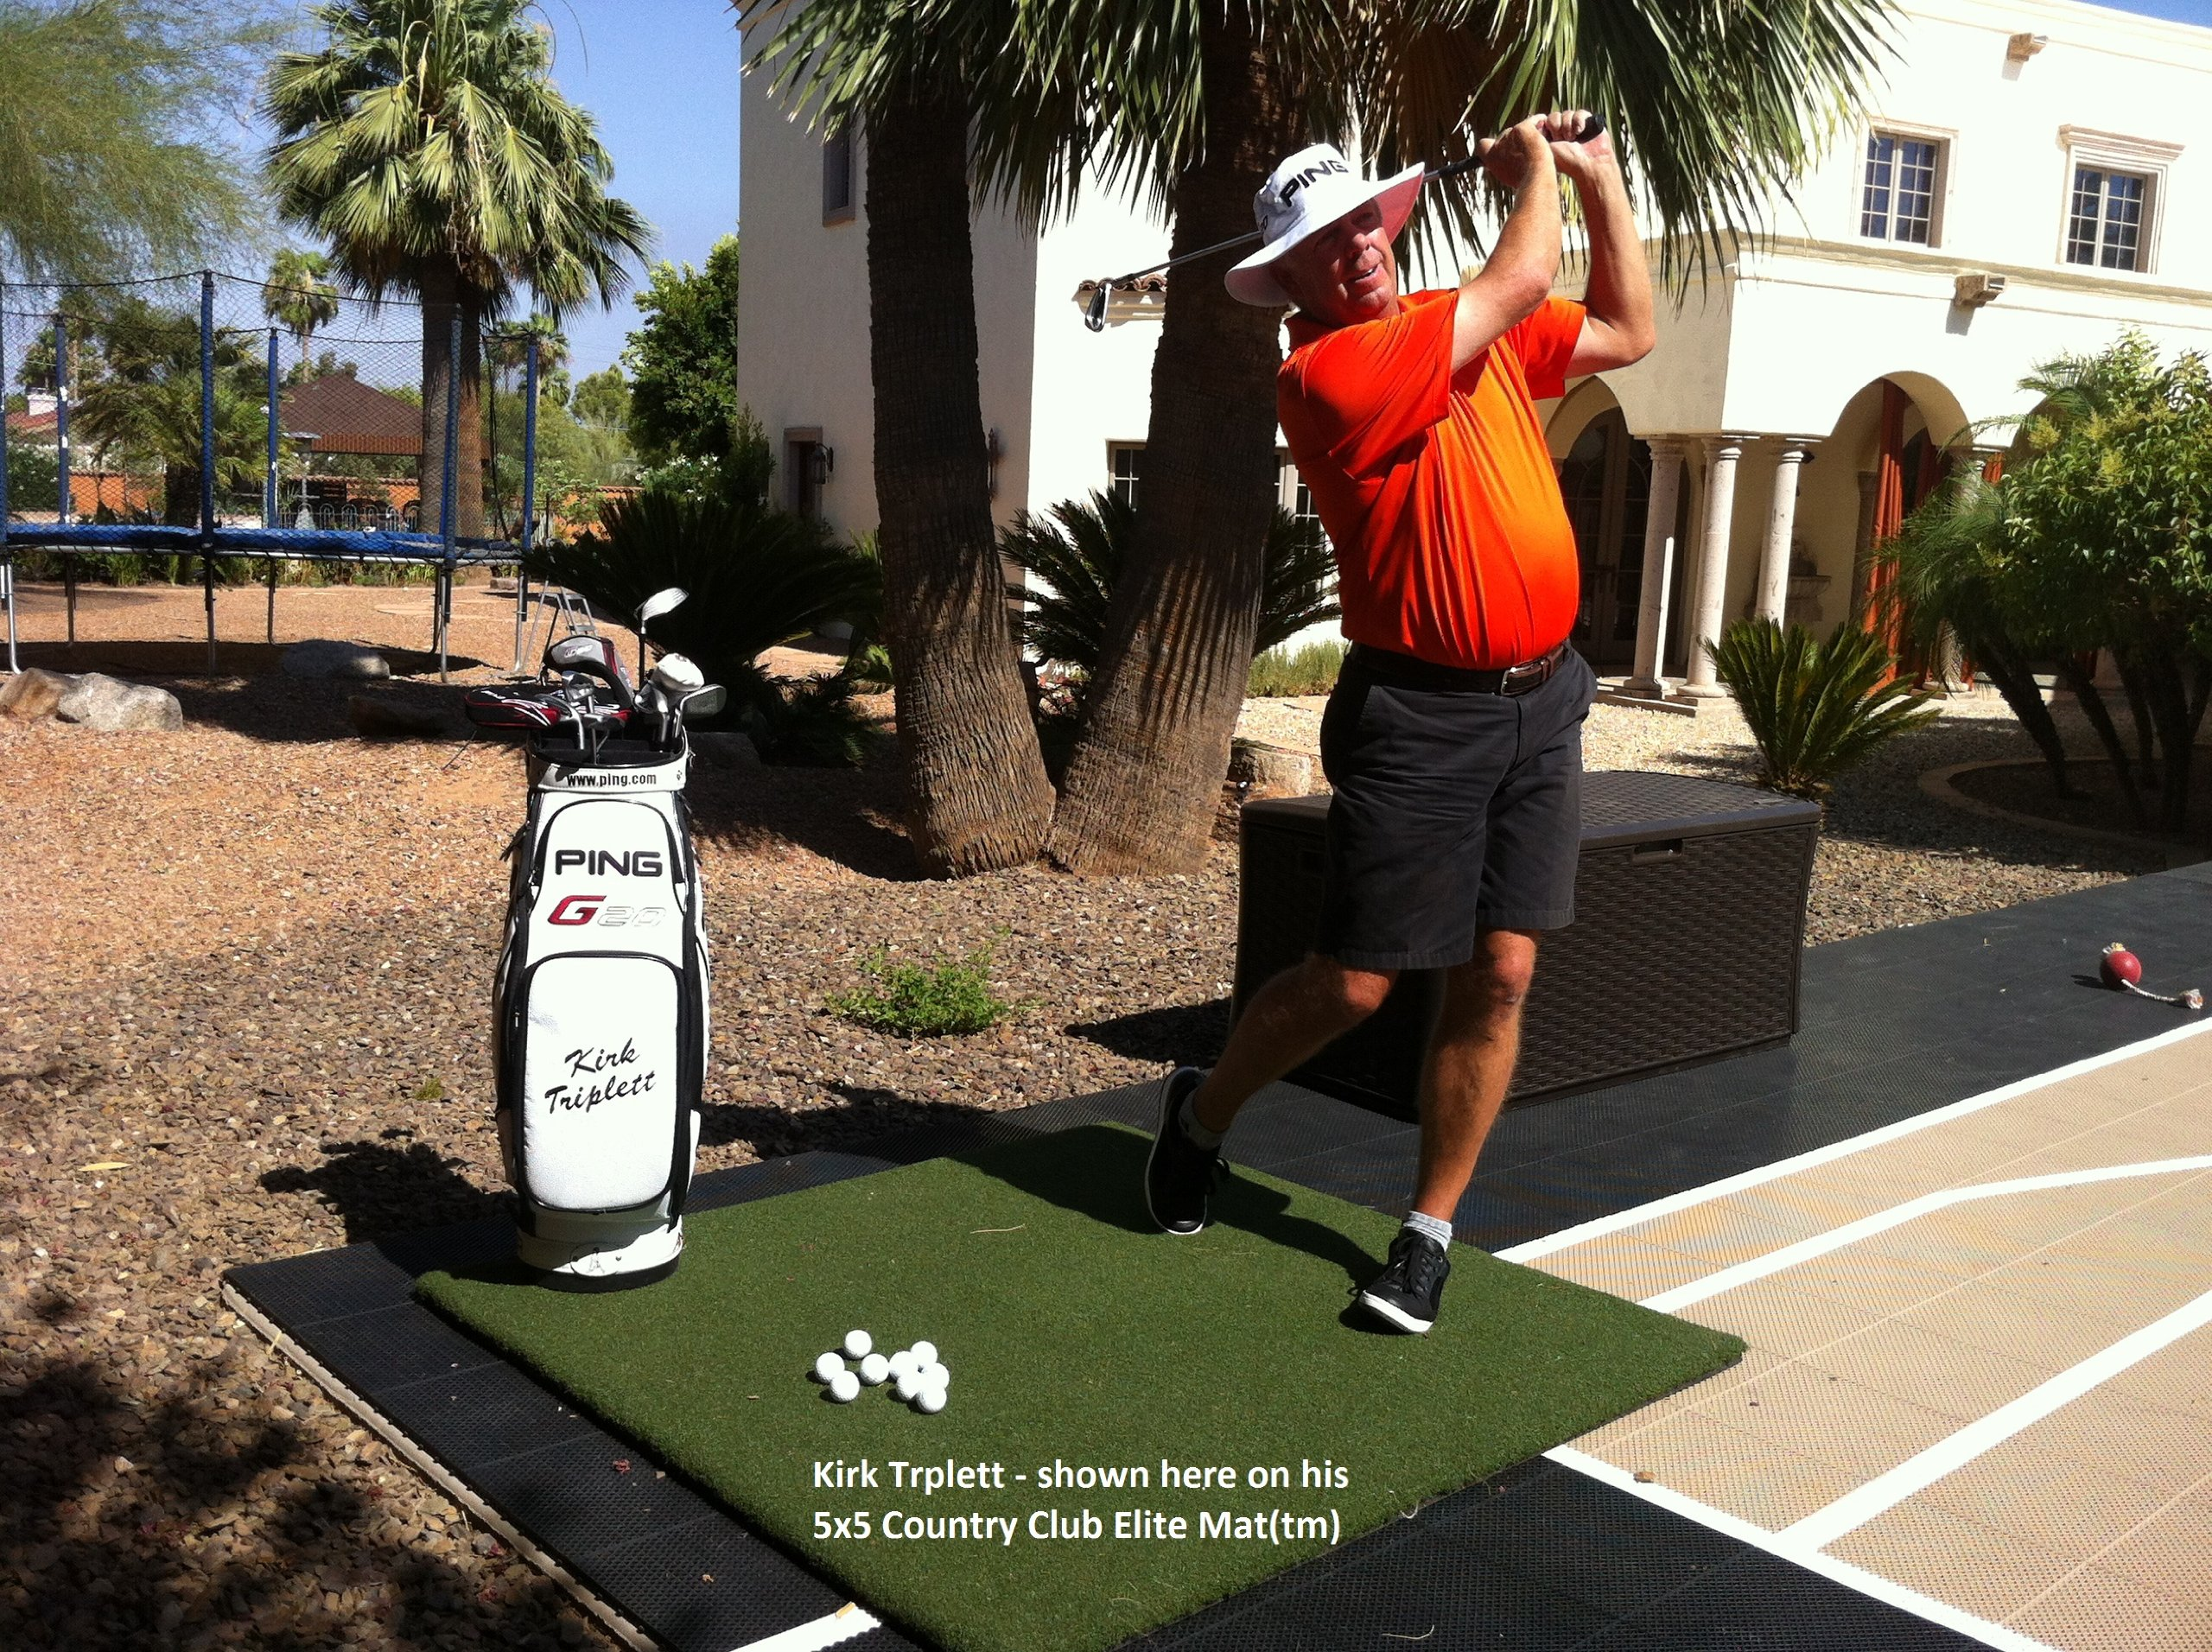 5x5 Country Club Elite Real Feel Golf Mats The First Golf Mat That Takes A Real Tee and Lets You Swing Down Through For Realistic Practice & Free Adjustable Practice Tee by Real Feel Golf Mats